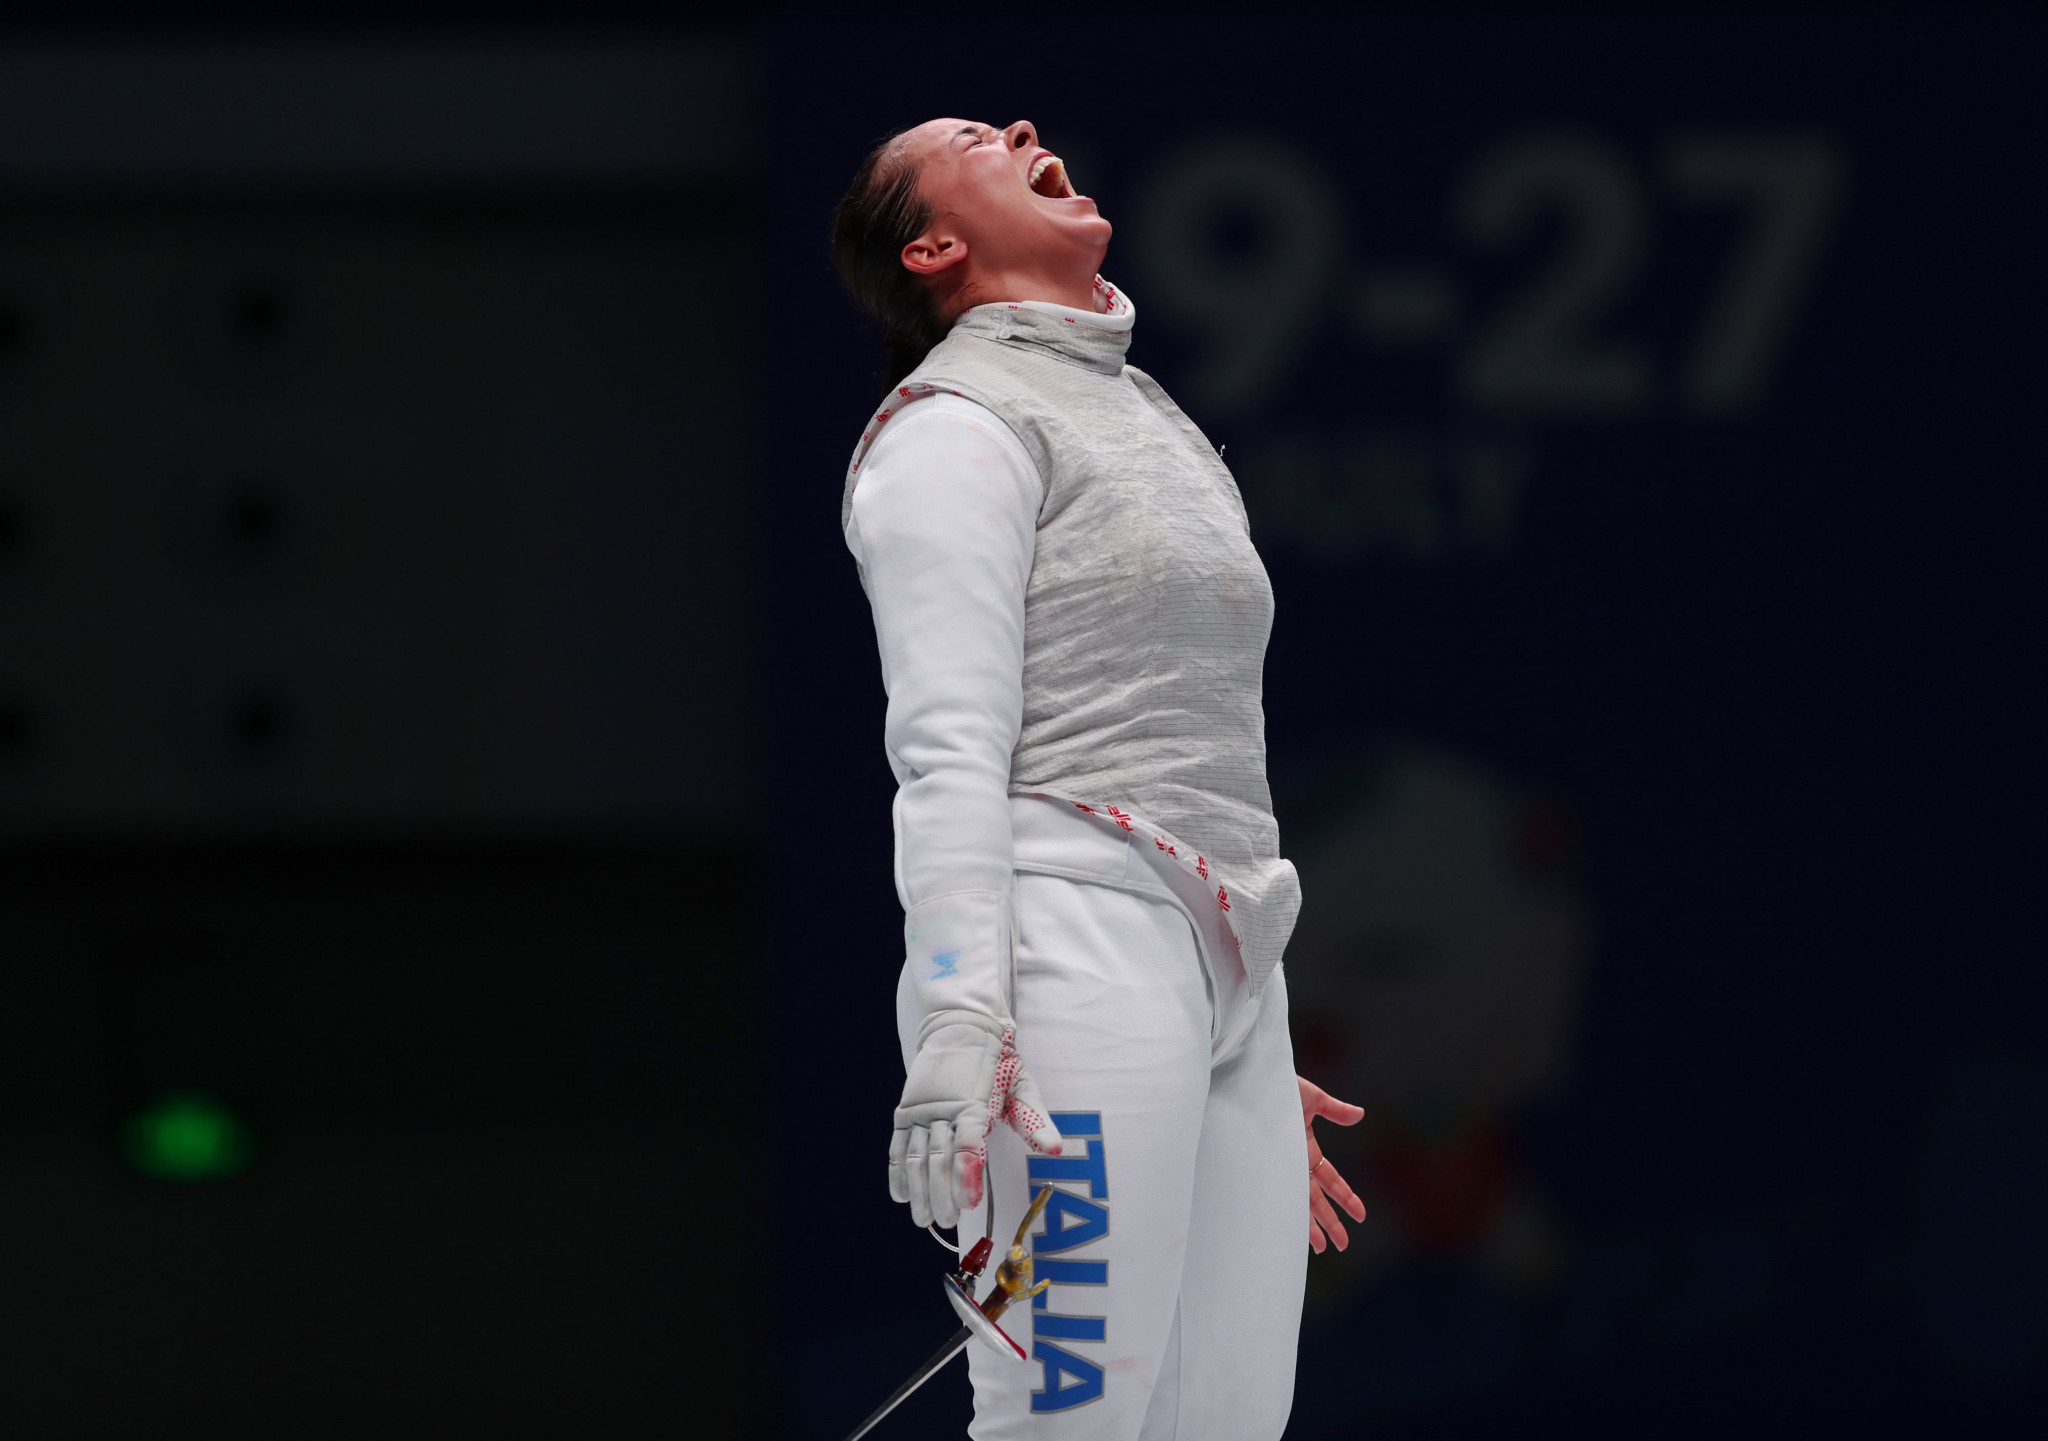 Italy's Alice Volpi is one of the favourites to claim the title ©Getty Images